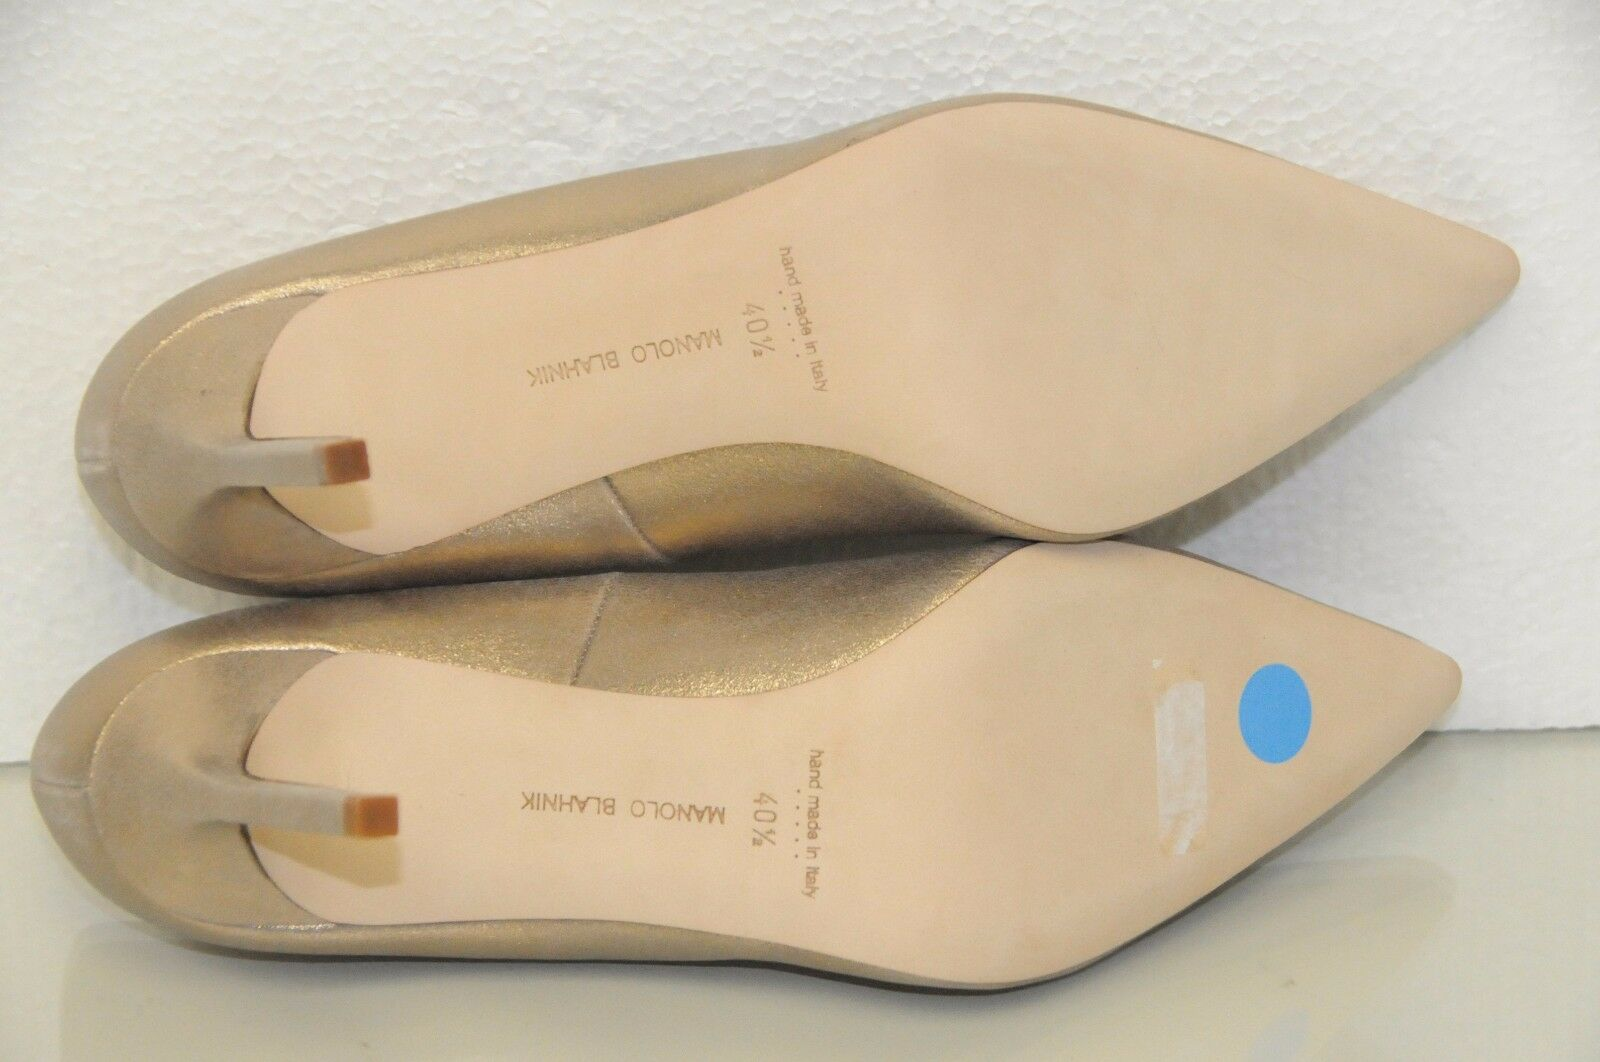 New Manolo Blahnik BB 90 90 90 shimmery or Suede leather chaussures Heels Pumps 40.5 73de2c